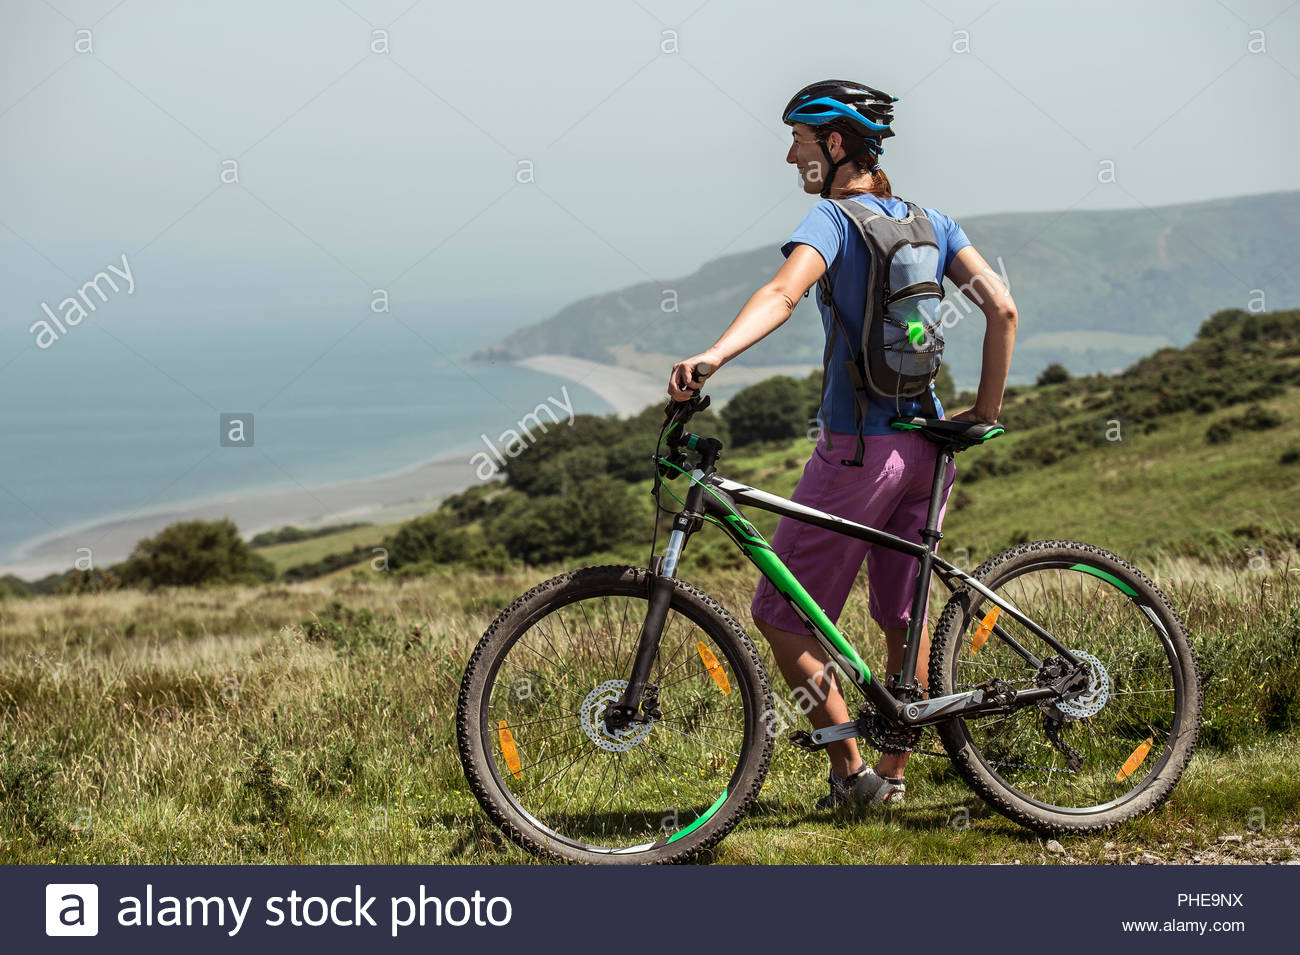 Woman with mountain bike on hill - Stock Image